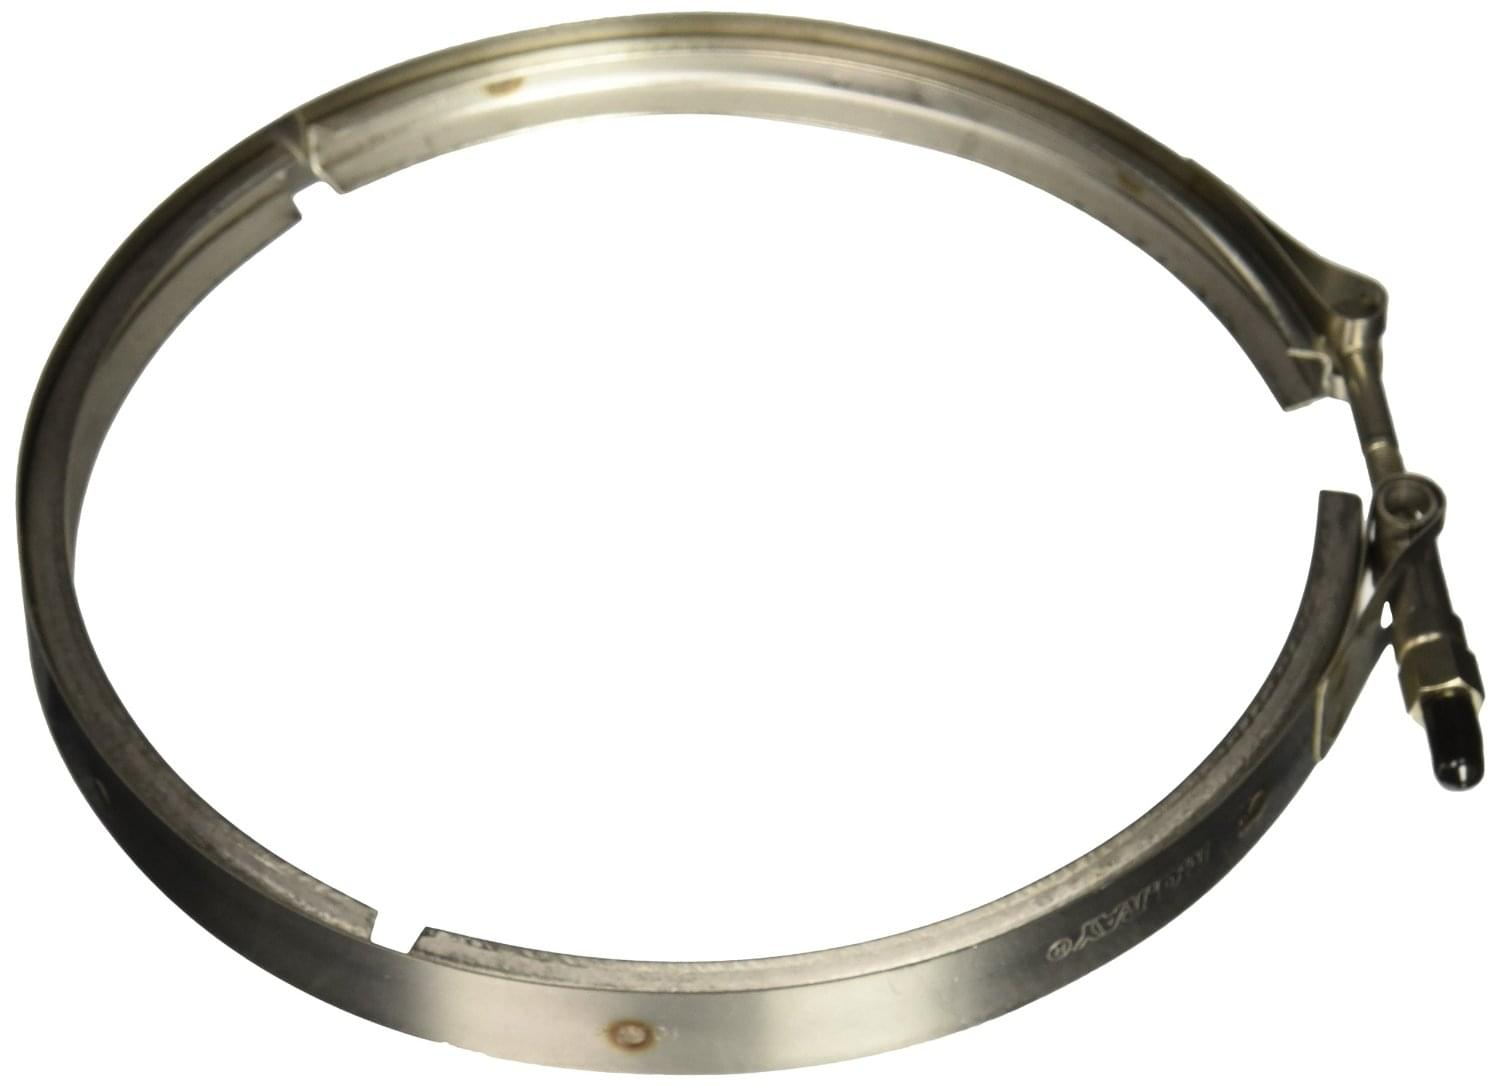 Hayward Sx310n Heavy Duty Clamp Replacement Pool